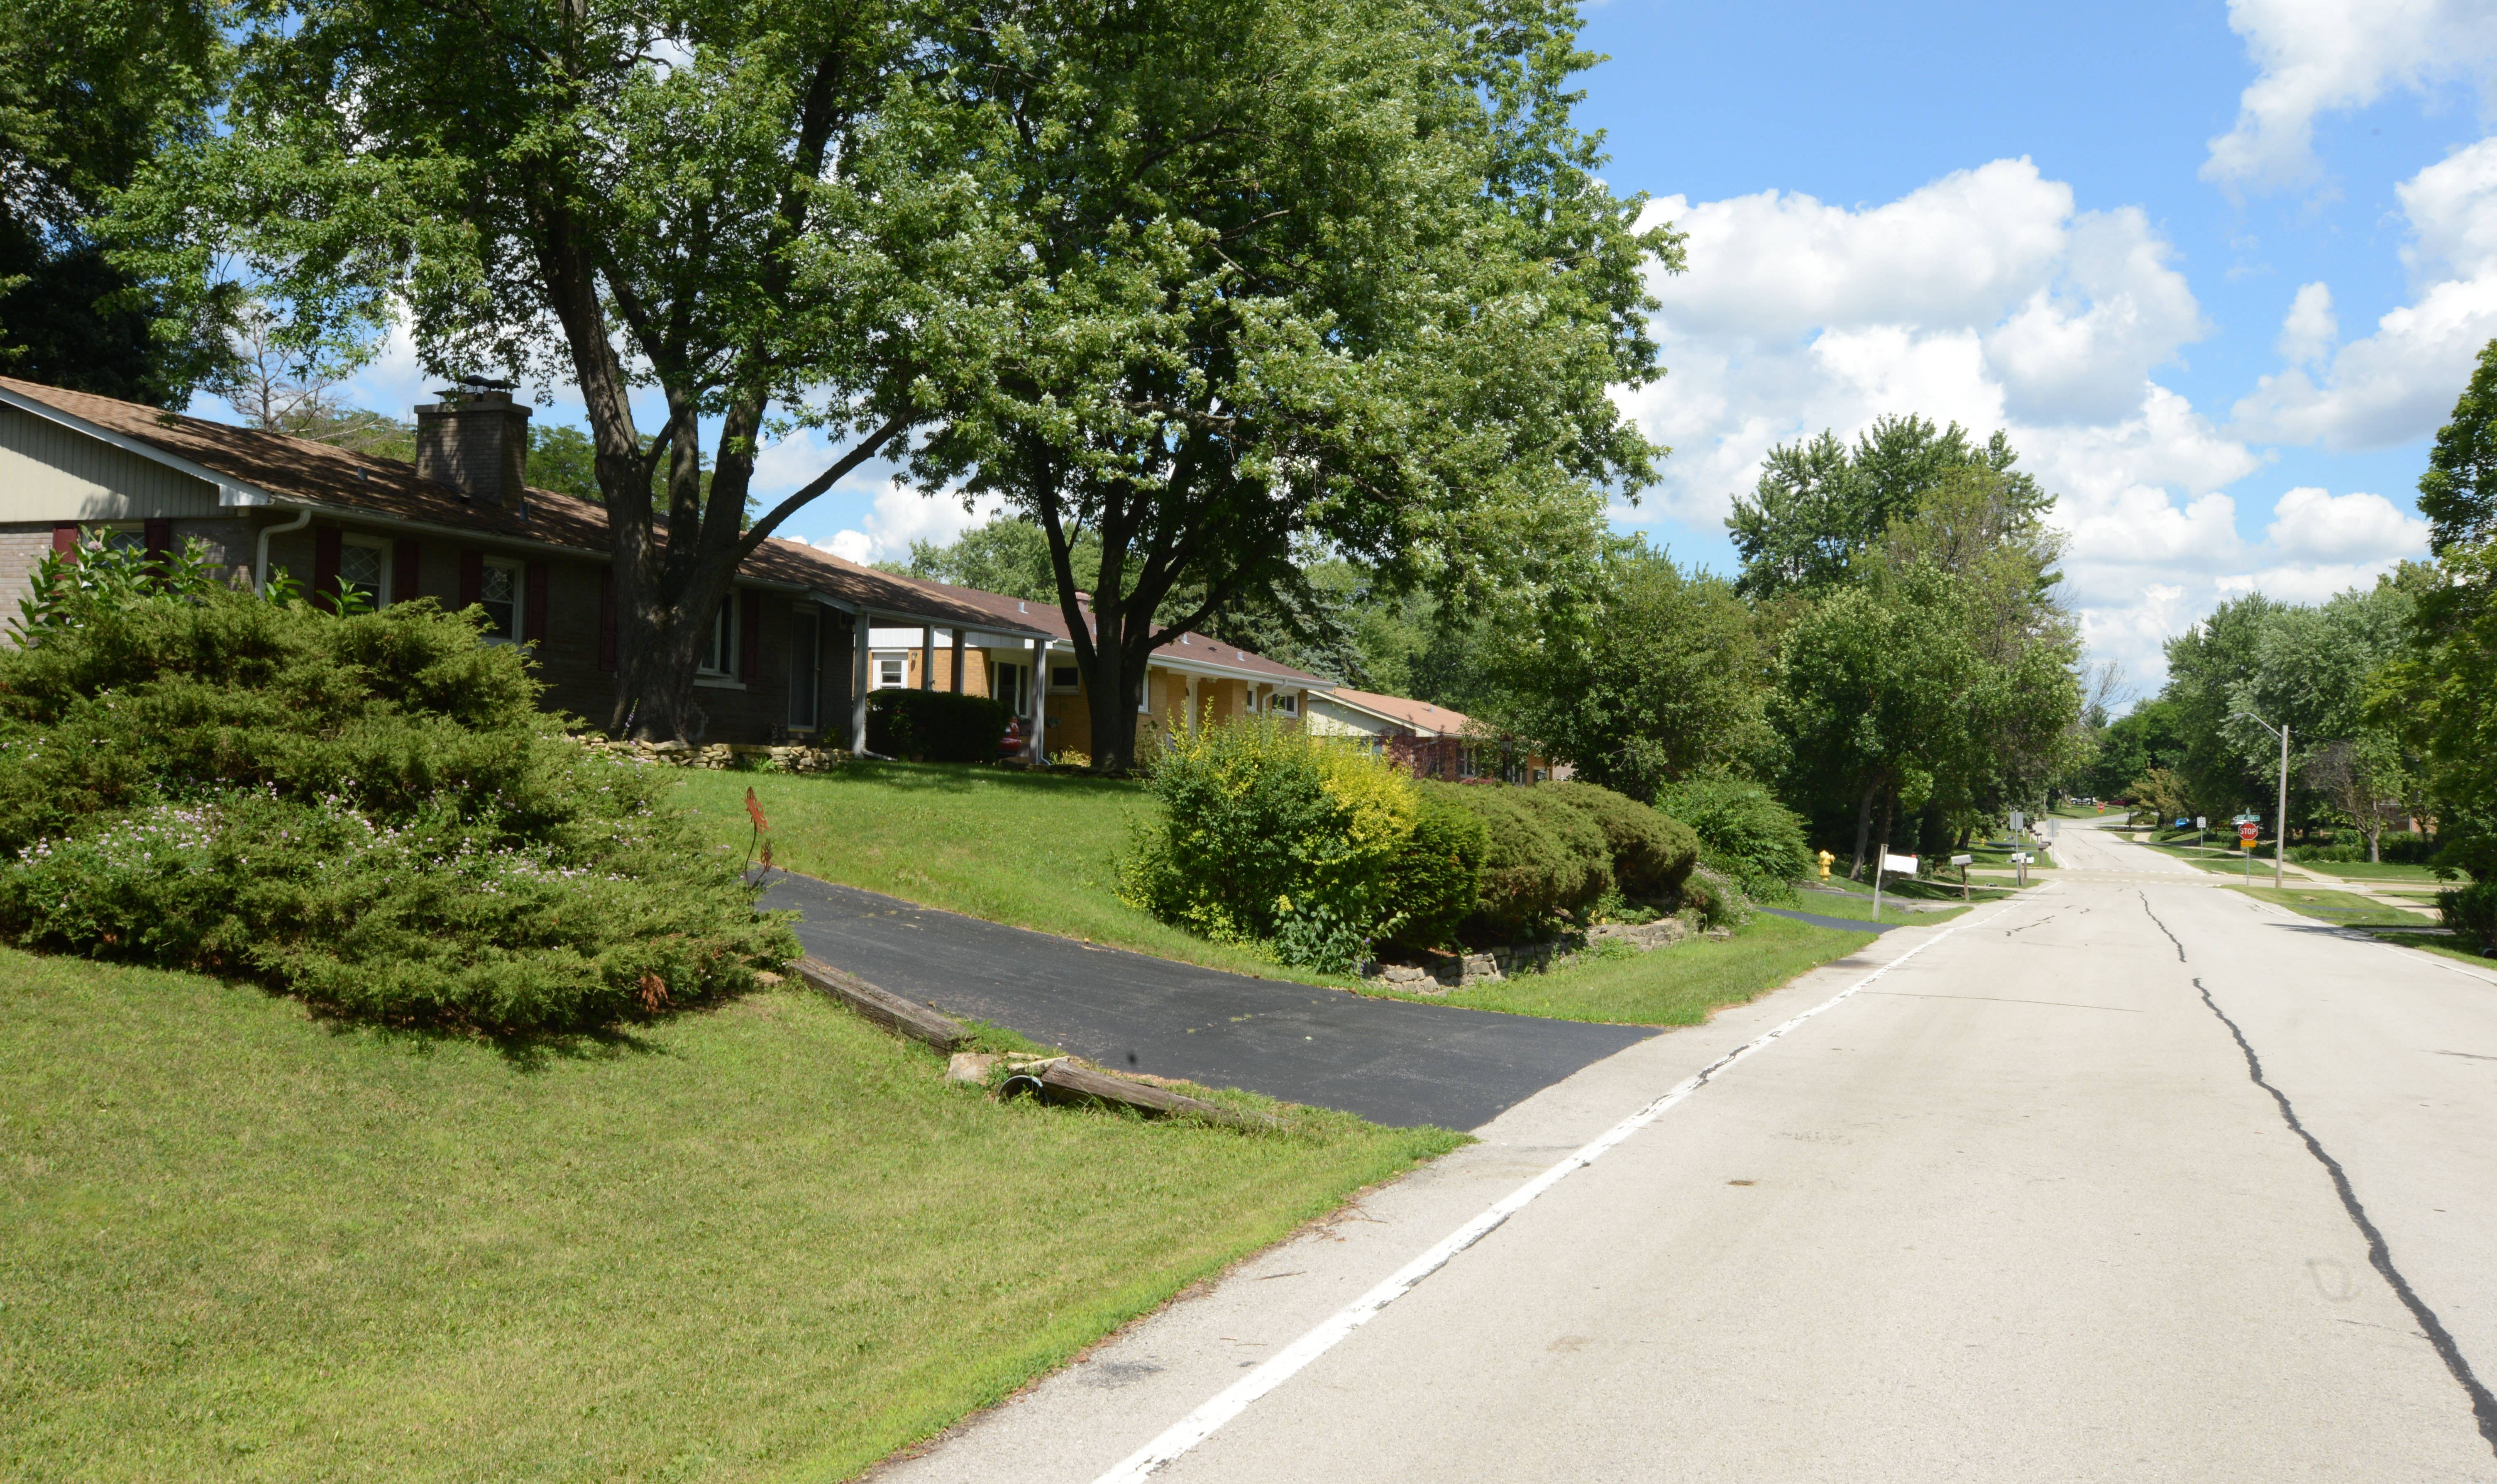 Oakview is considered the first neighborhood in Lisle, which became a village in 1956. The subdivision has a mix of older and new homes along wide streets.